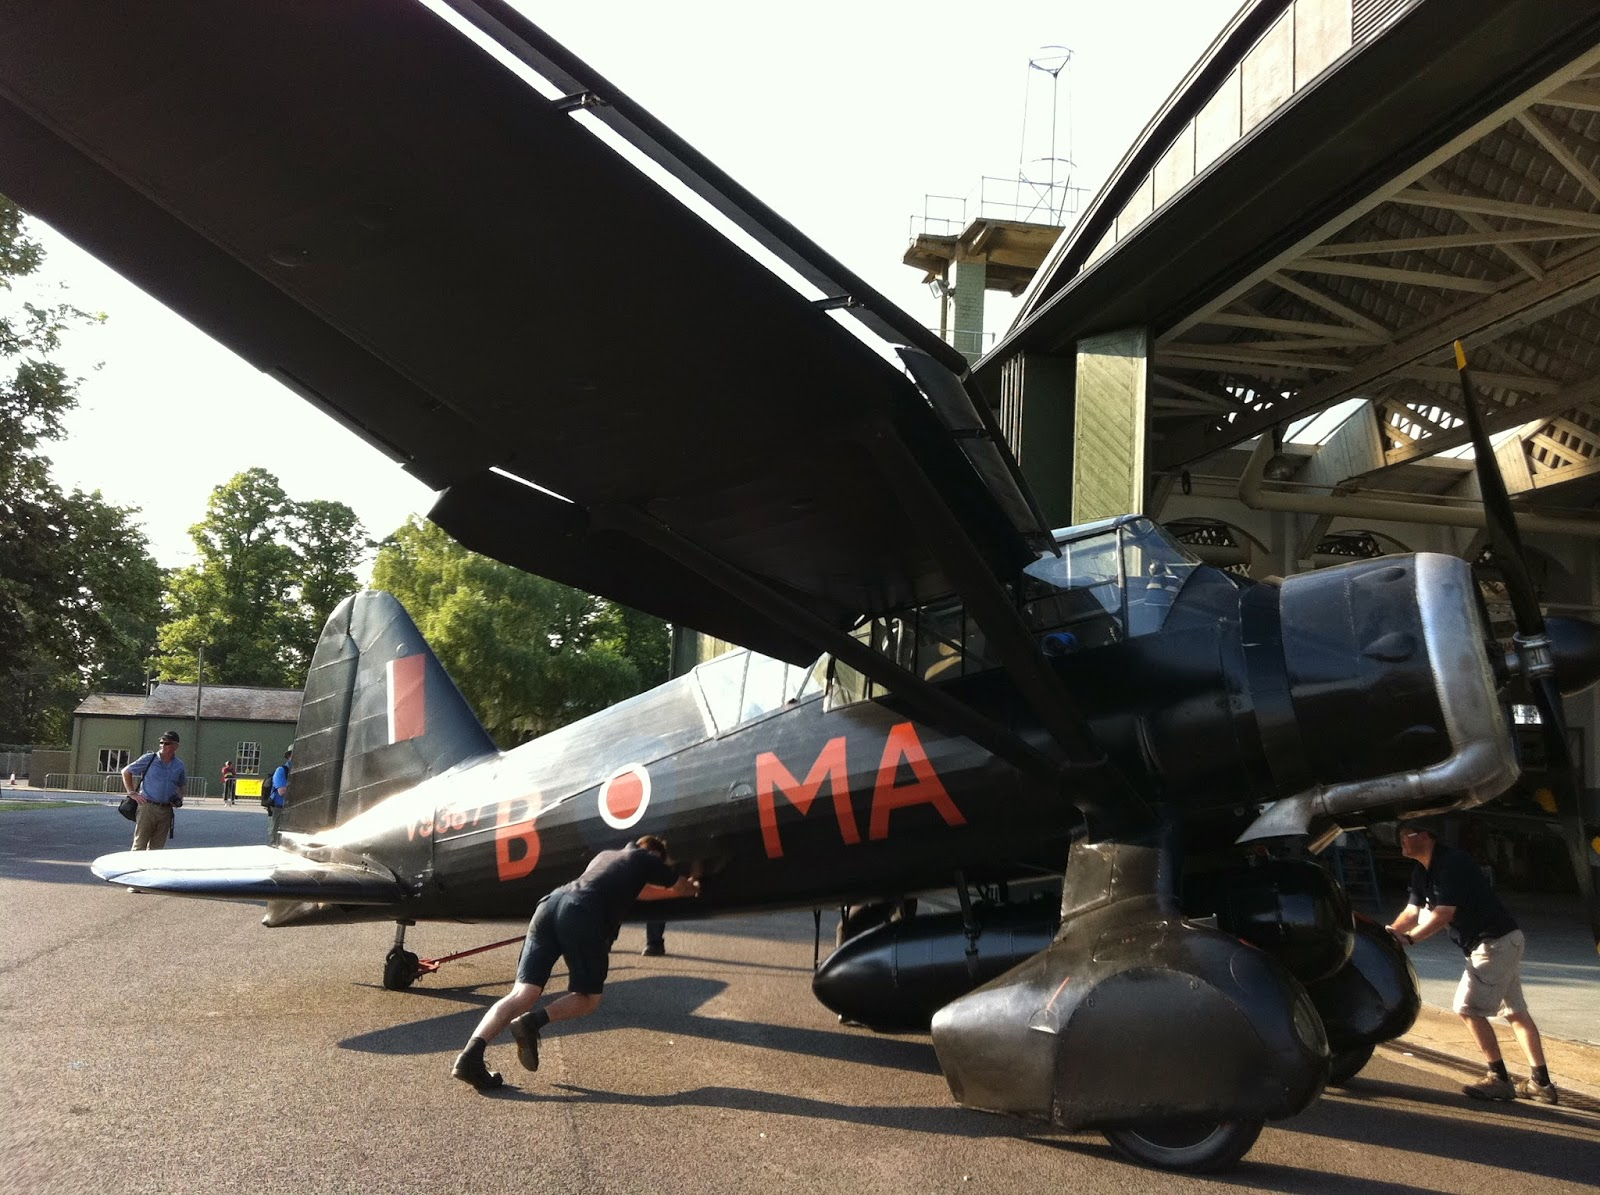 WESTLAND LYSANDER DESIGN TOUR   Rich and Greg's Airplane Page on